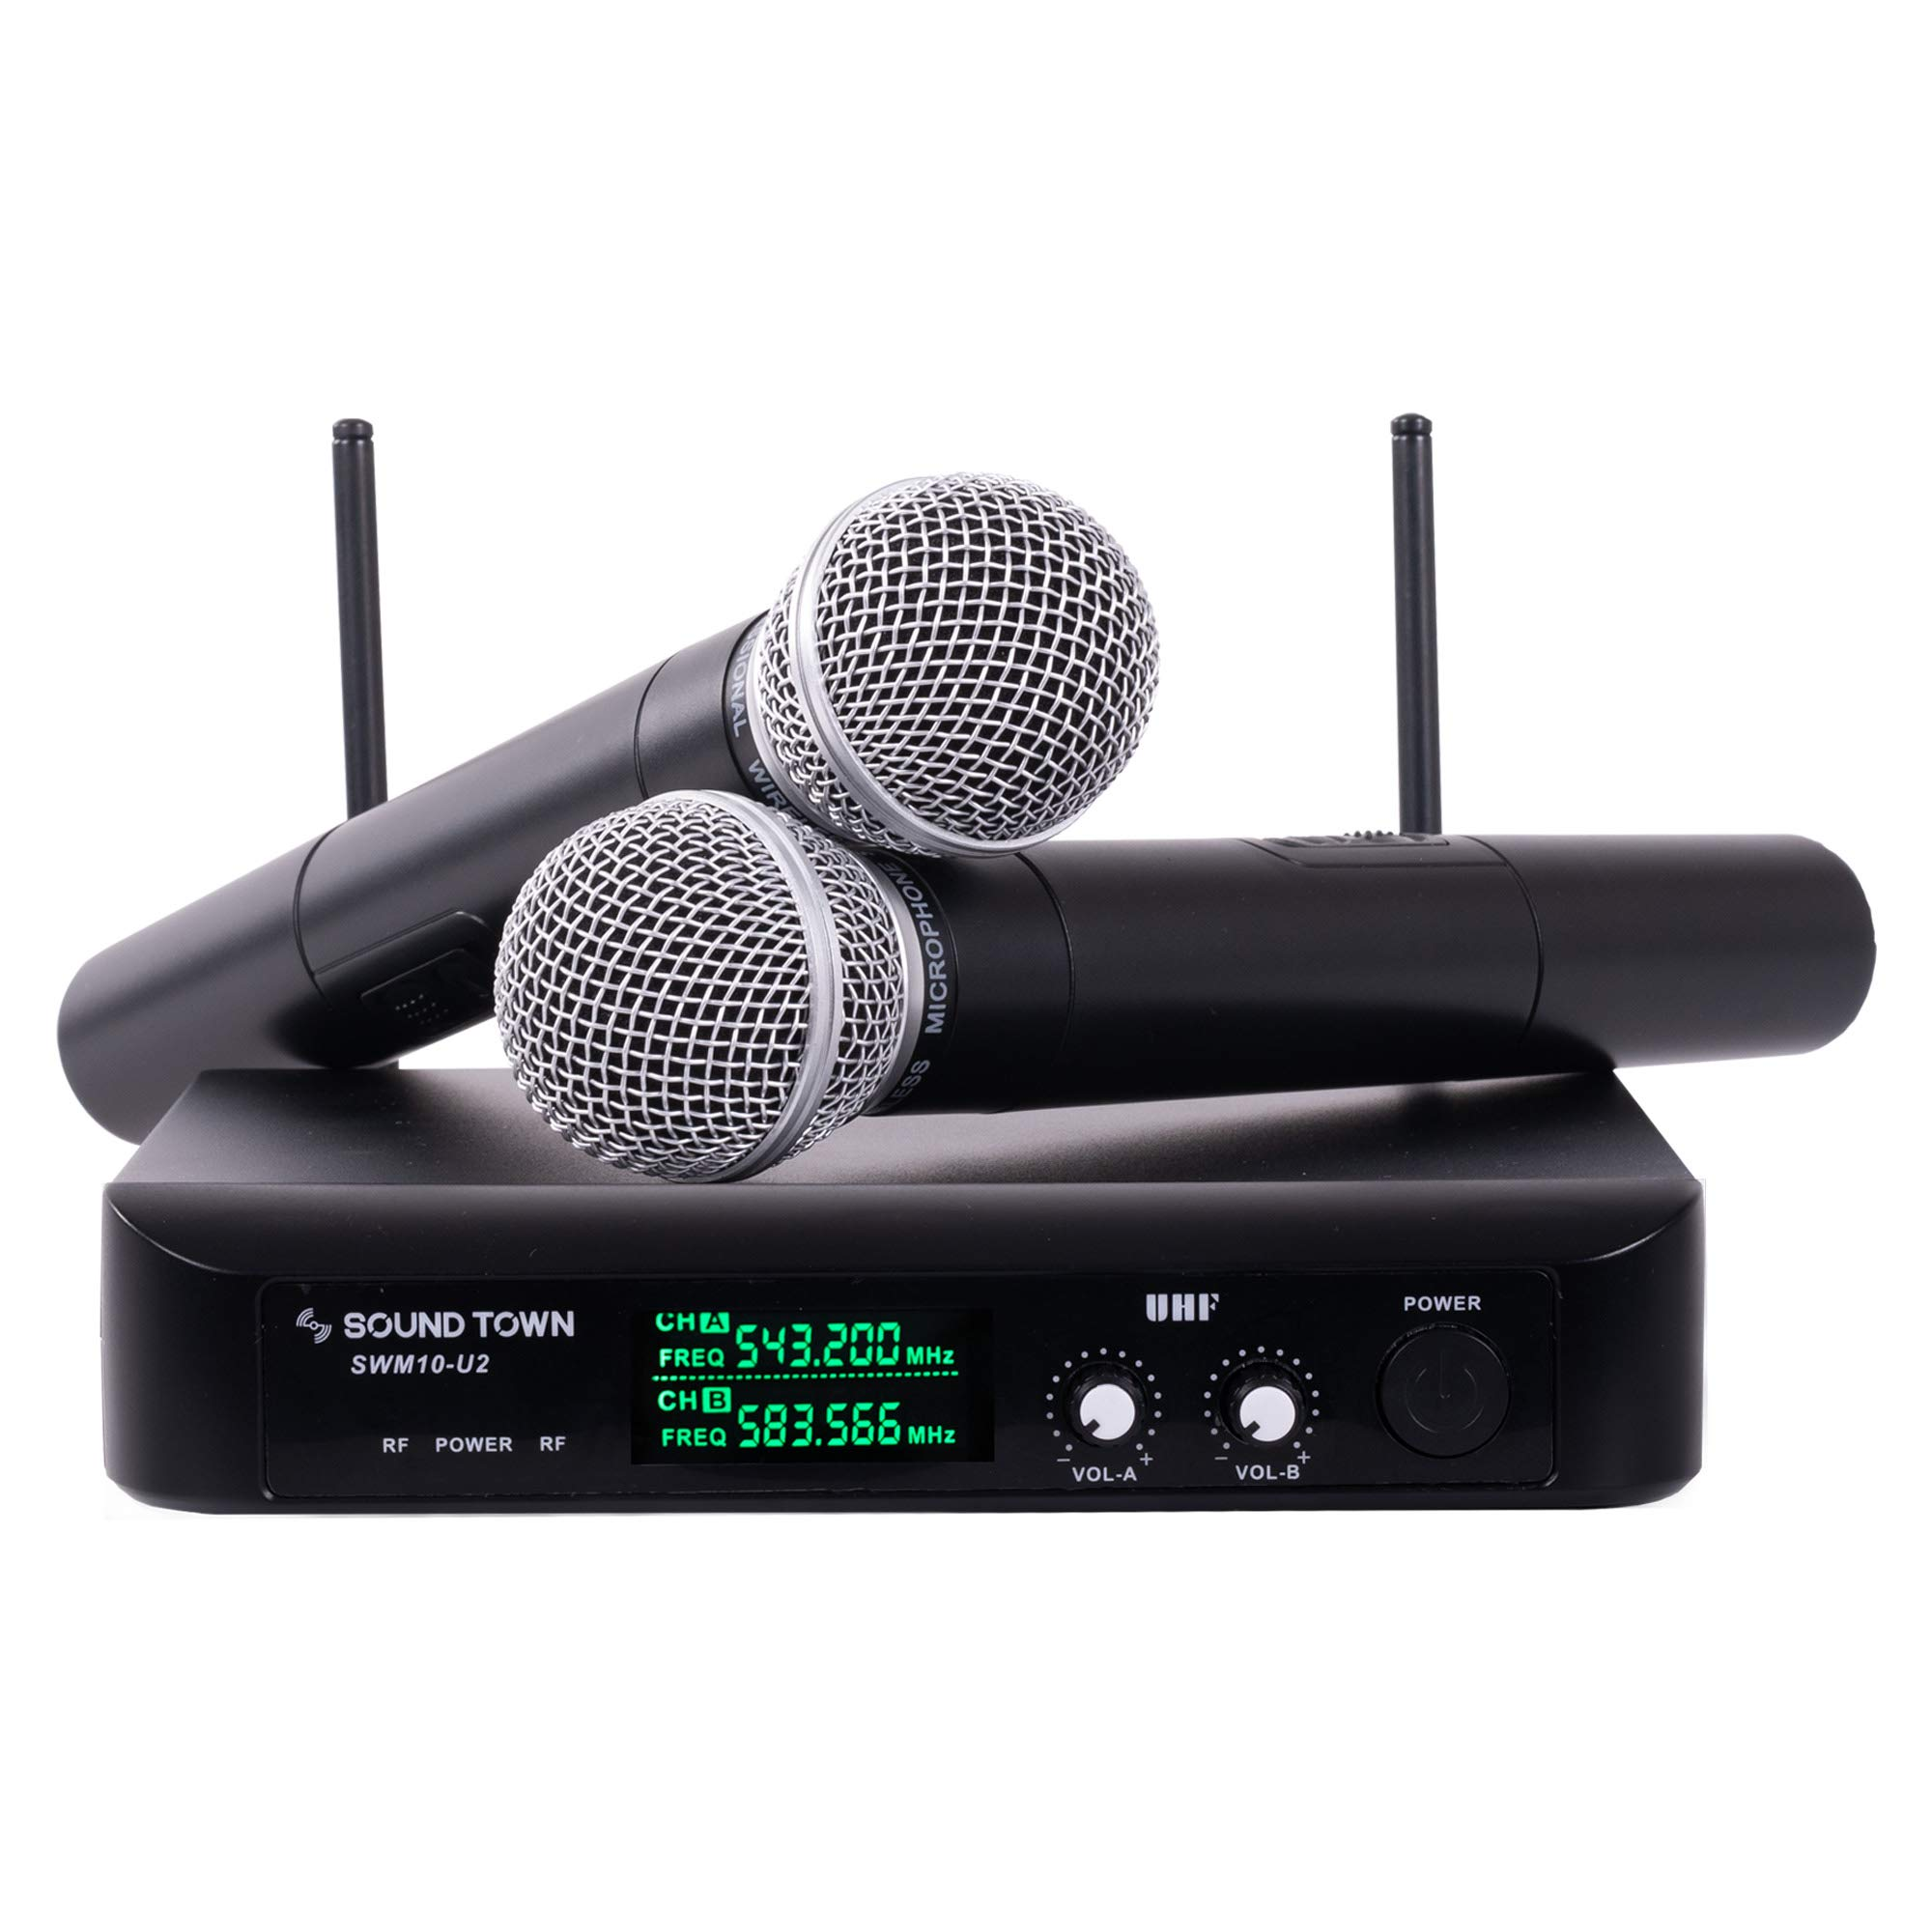 Sound Town SWM10-U2HH Professional Dual-Channel UHF Wireless Microphone System with 2 Handheld Mics, for Church, Business Meeting, Outdoor Wedding and Karaoke by Sound Town